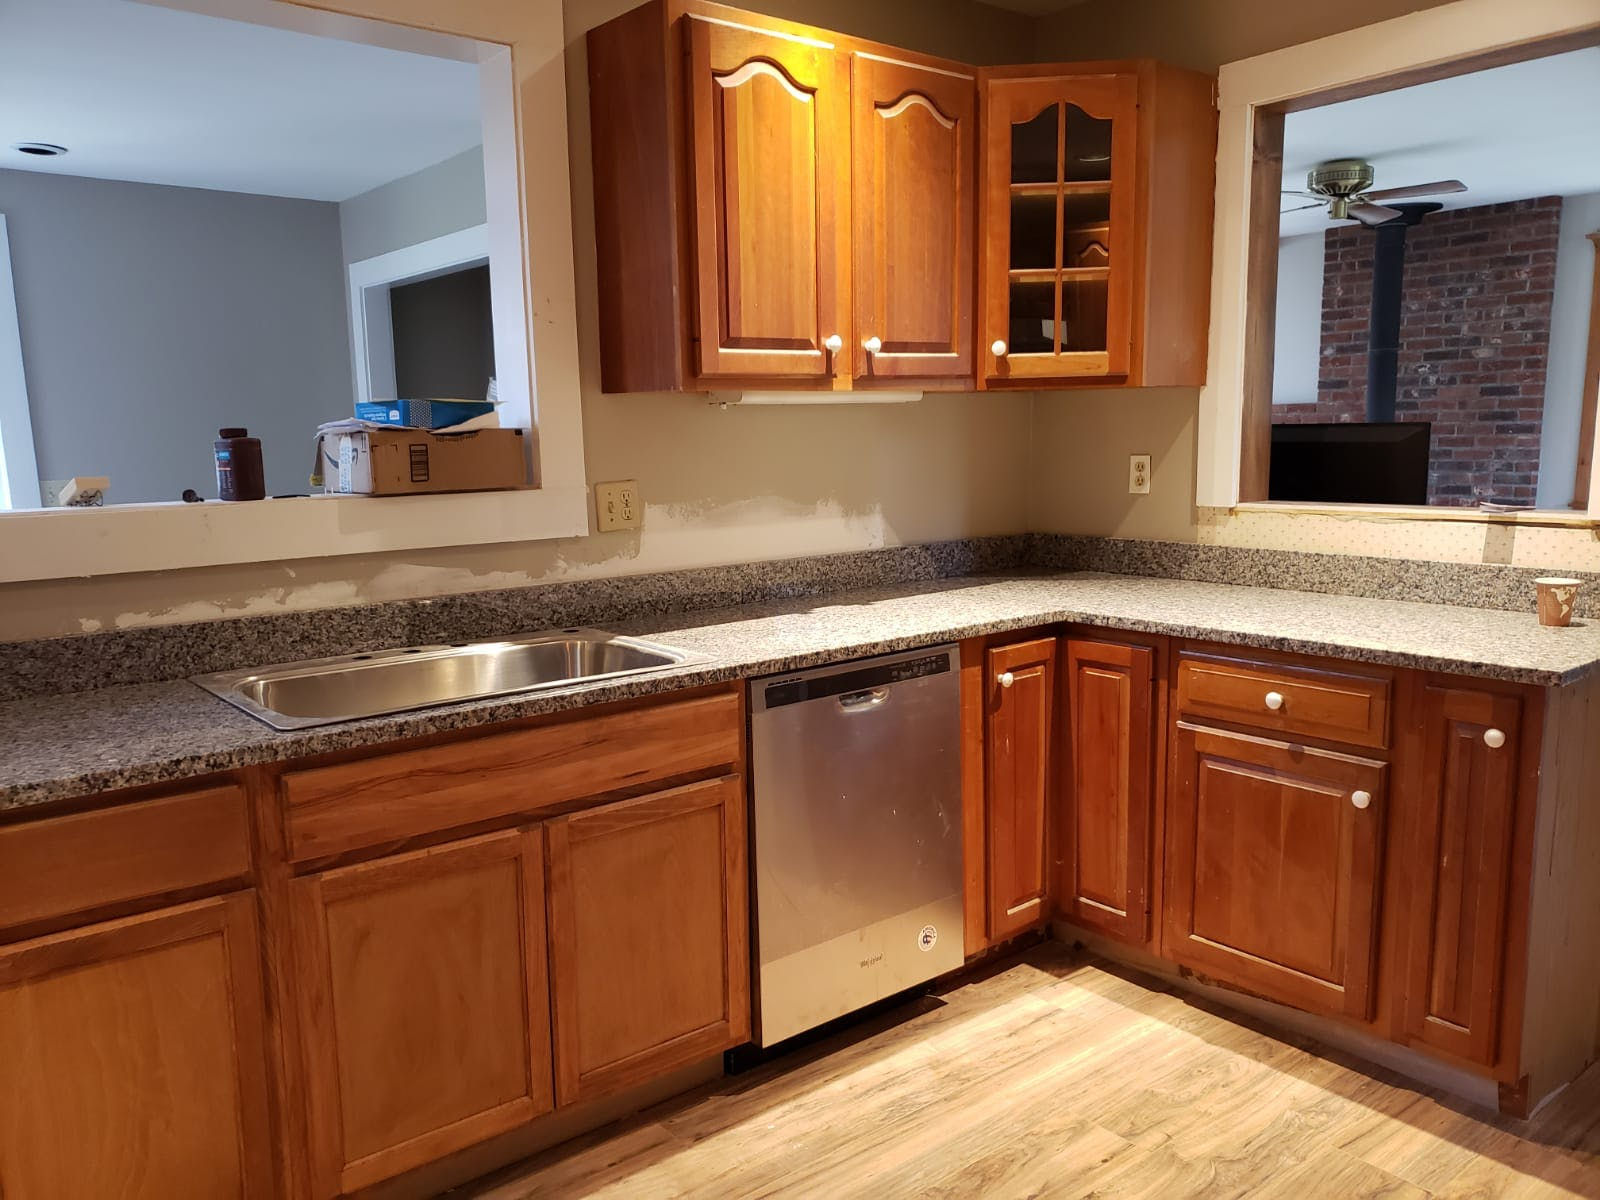 Image of a fully renovated kitchen.